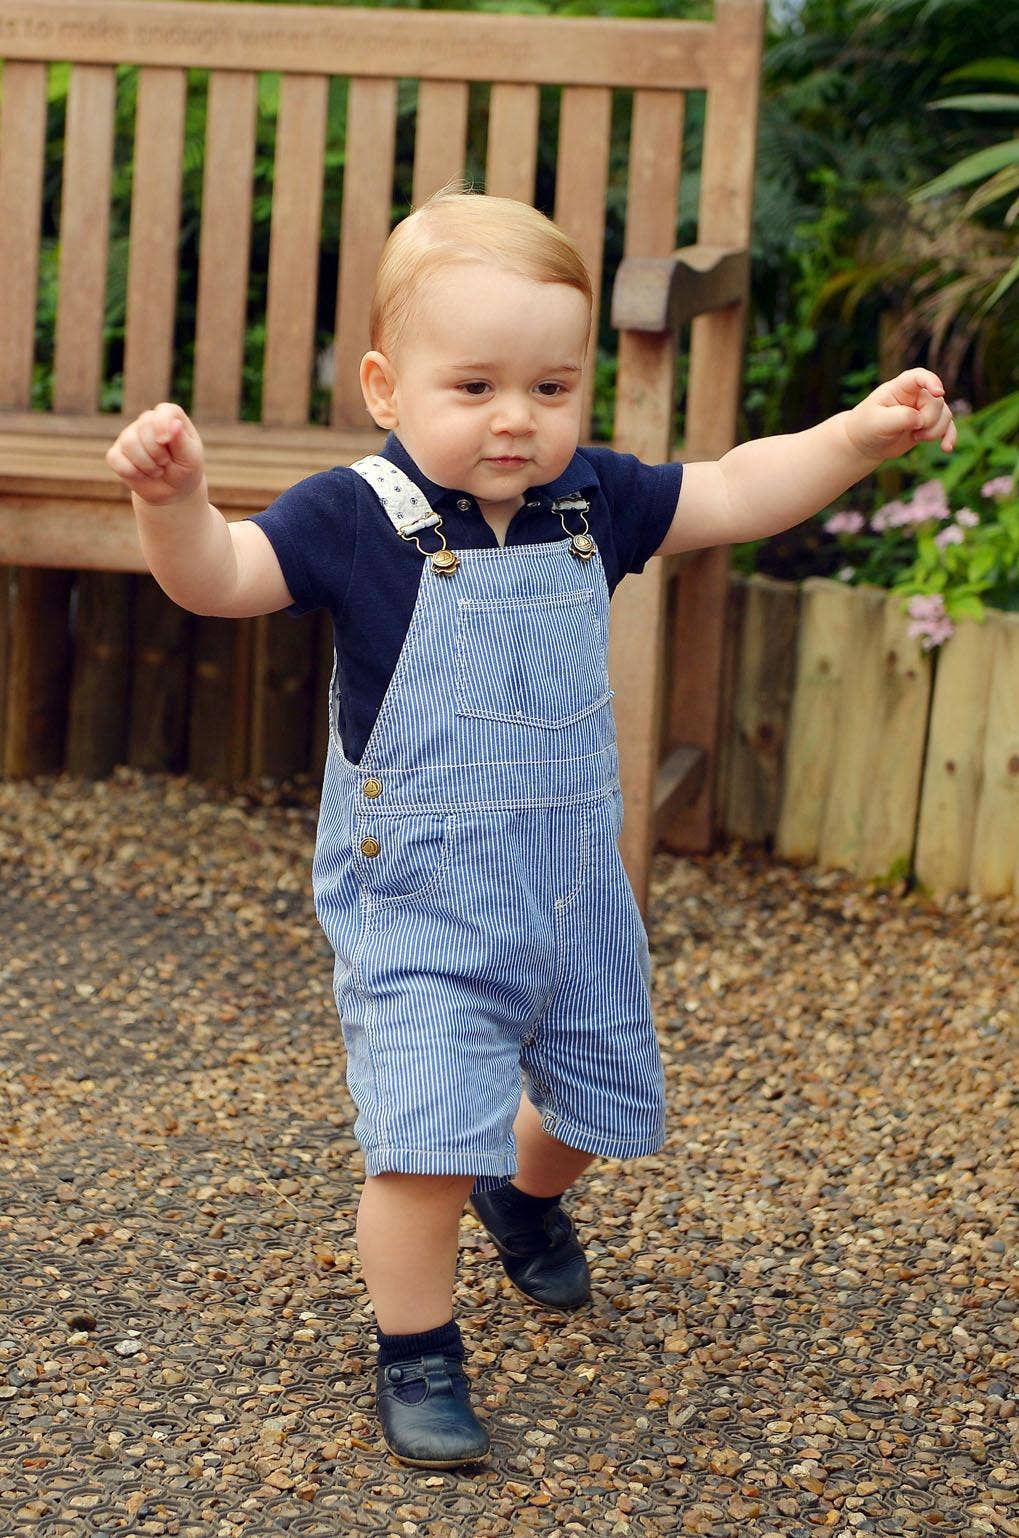 Many respondents adored Prince George's cuteness, identifying things like his smile and chubby cheeks